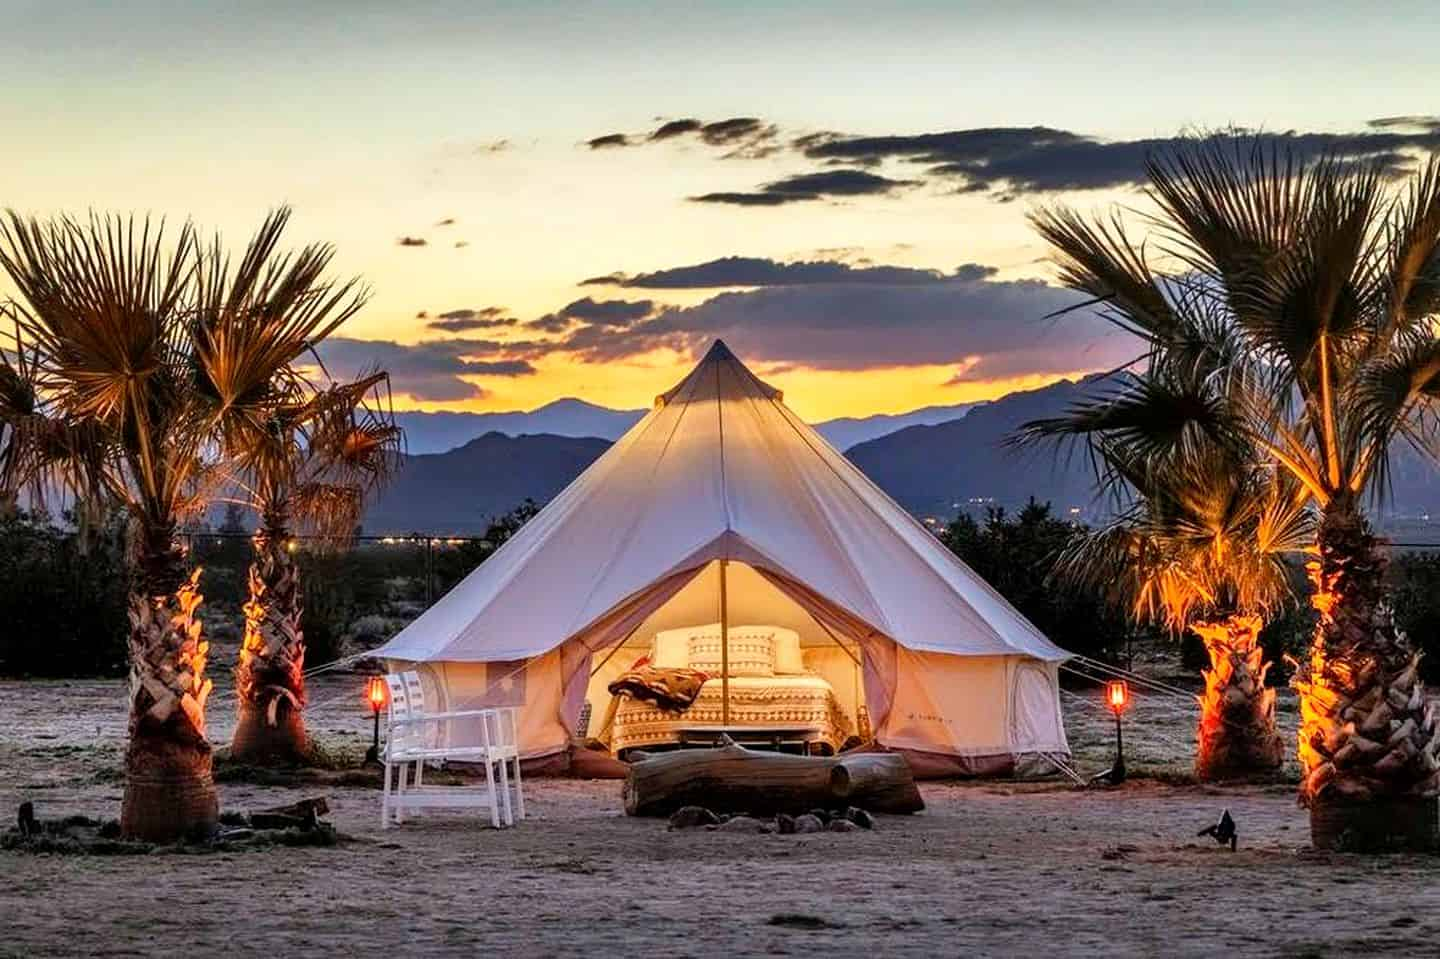 Glamping. Joshua Tree accommodation is perfect for glamping in California. Luxury camping is the ideal way to reconnect with the outdoors.